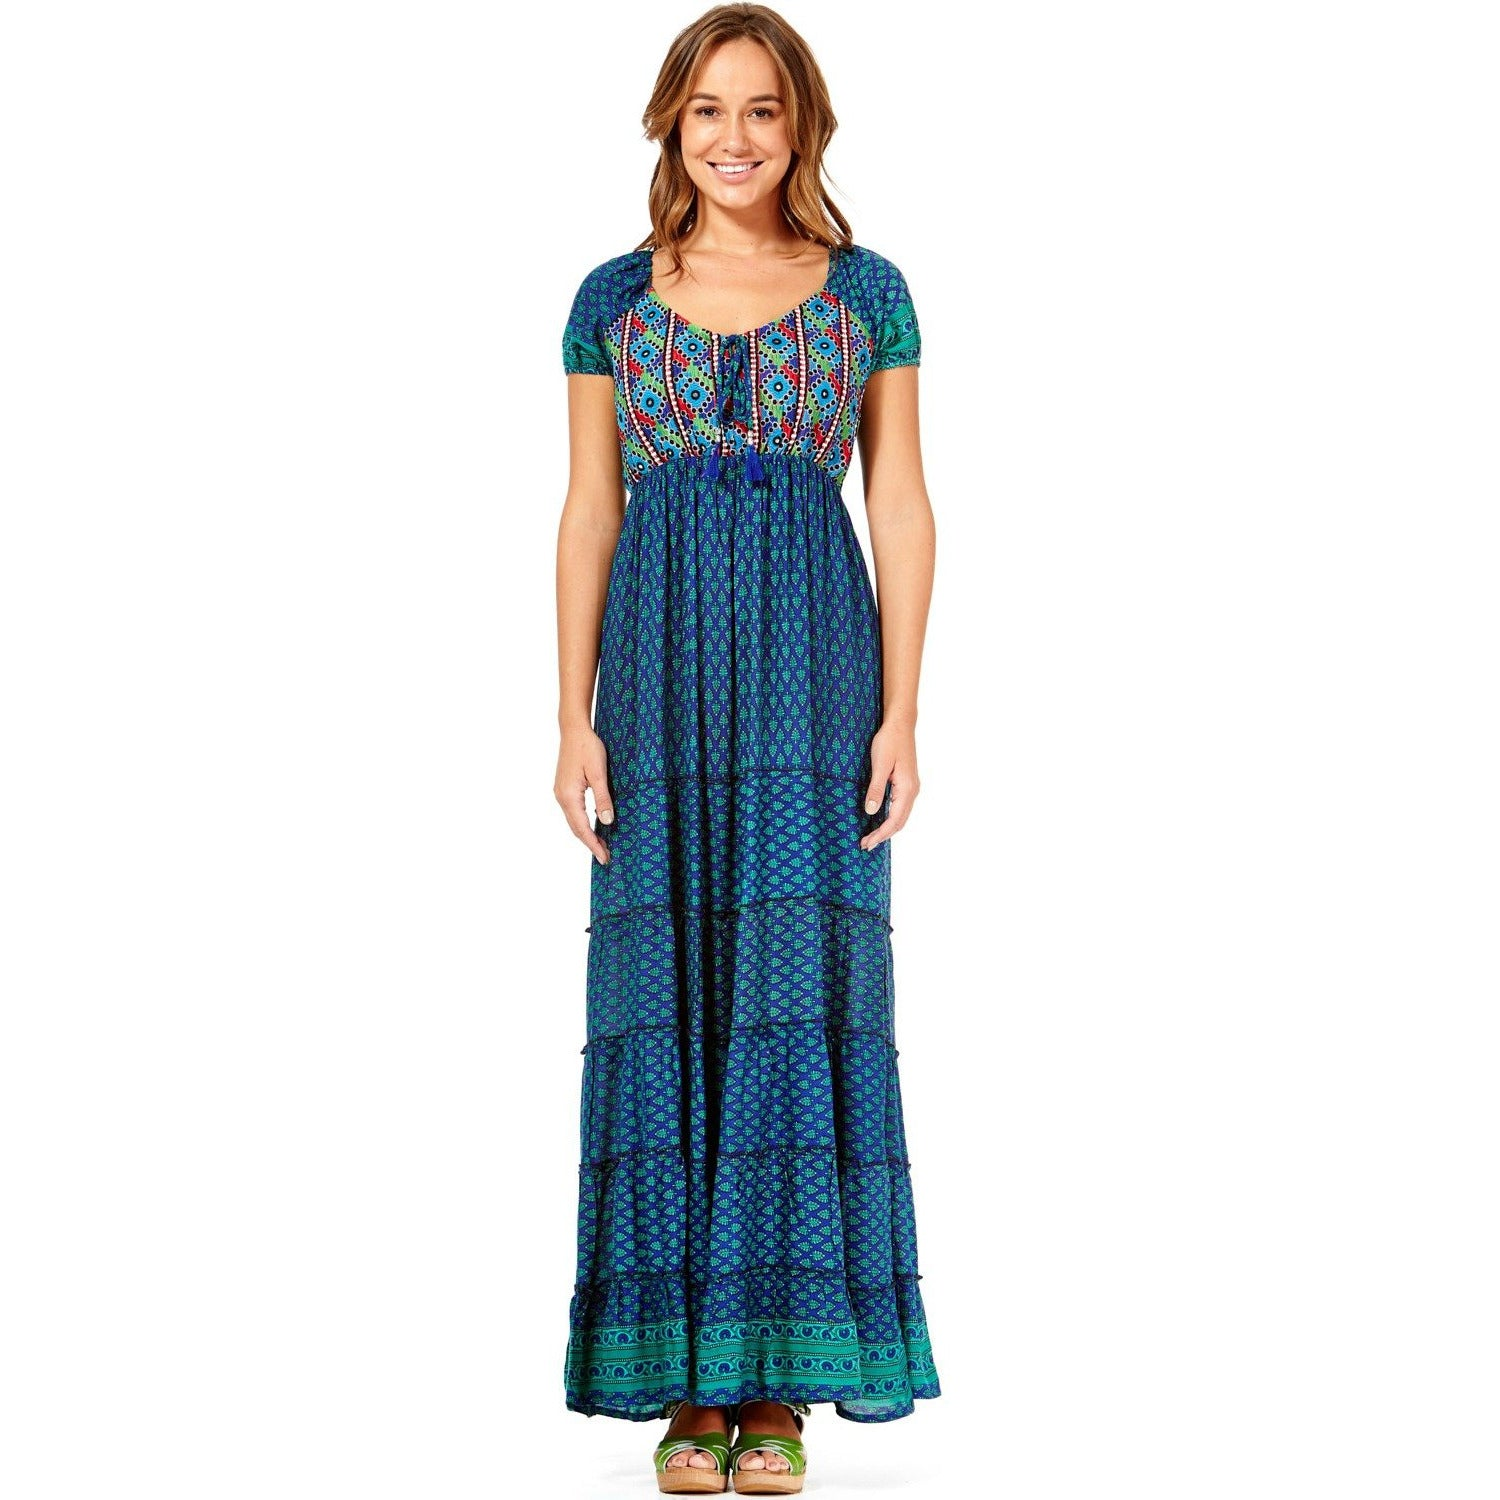 Rasaleela Eleanor Embroidered rayon dress L80